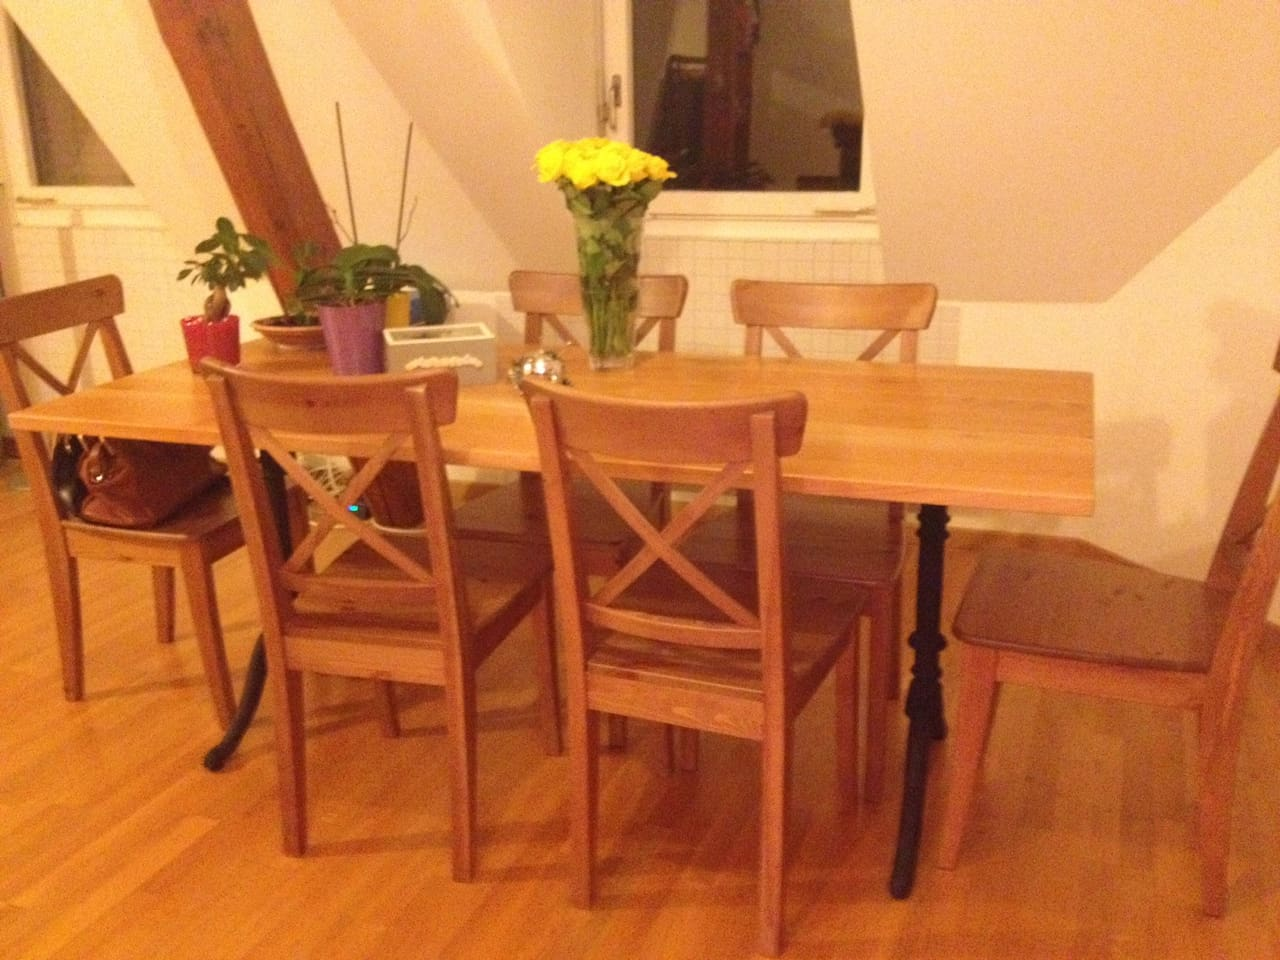 The cherry wood dining table